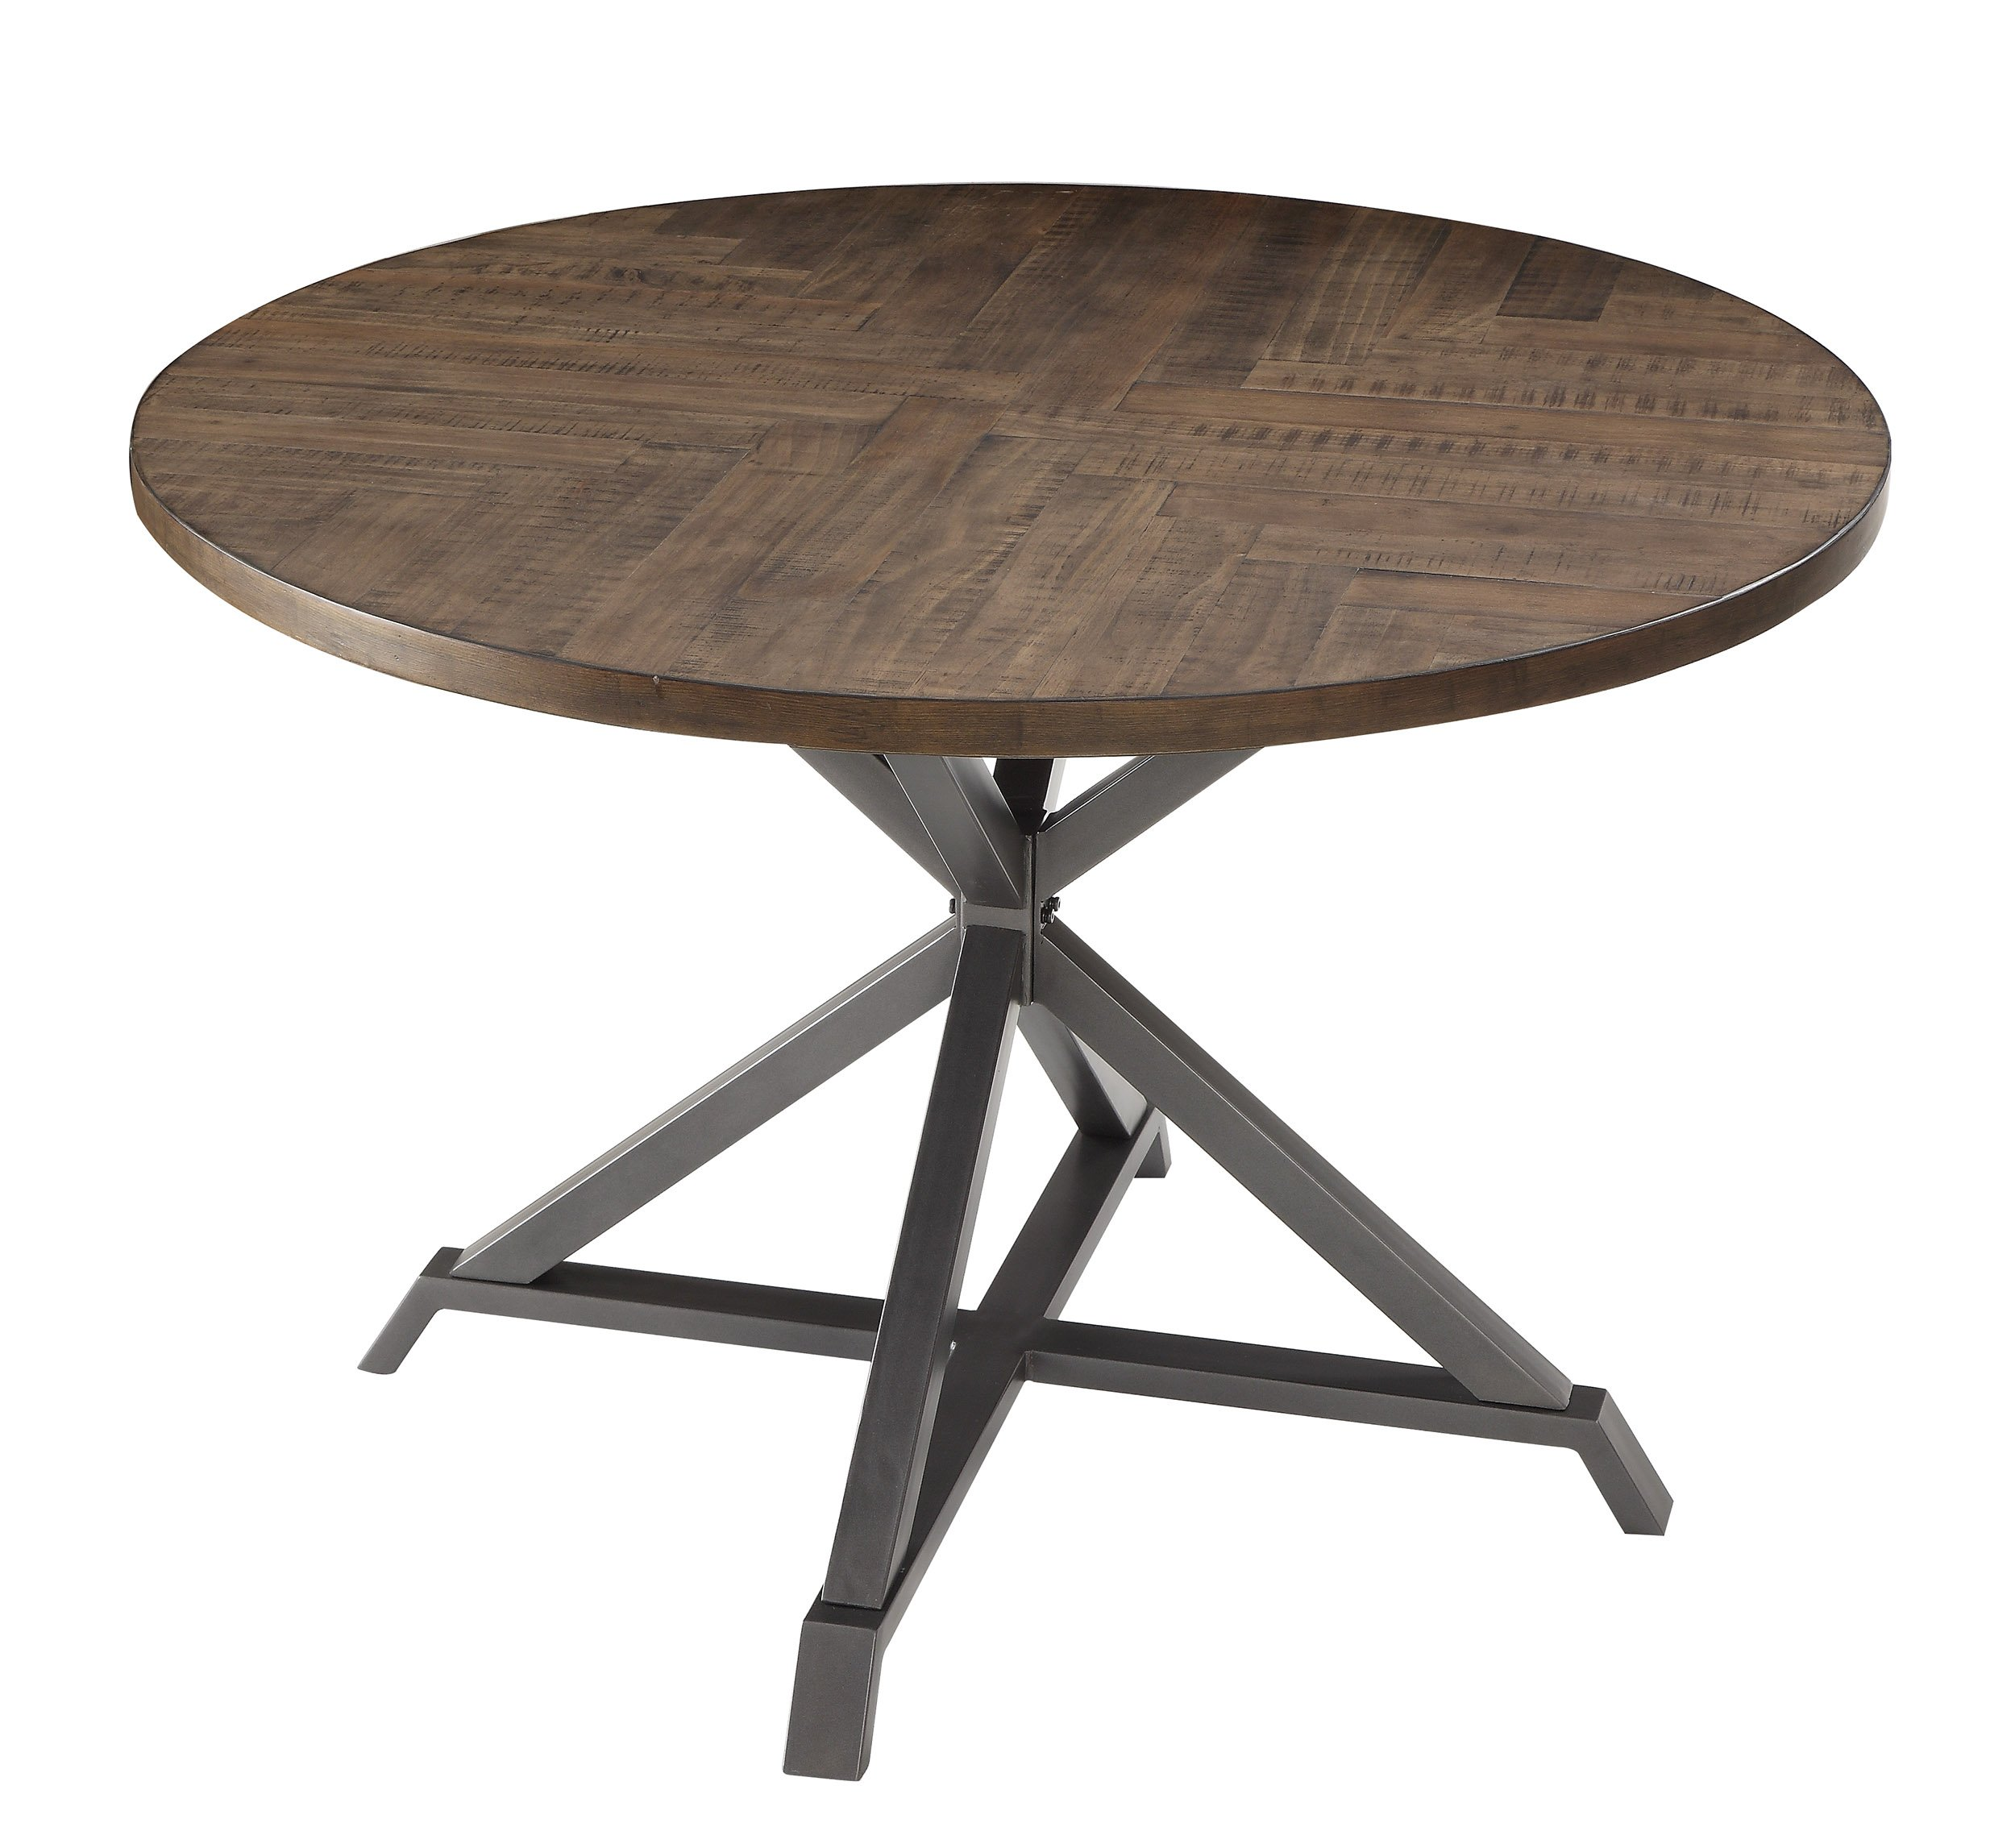 Homelegance Fideo 45'' Round Industrial Style Dining Table, Pine by Homelegance